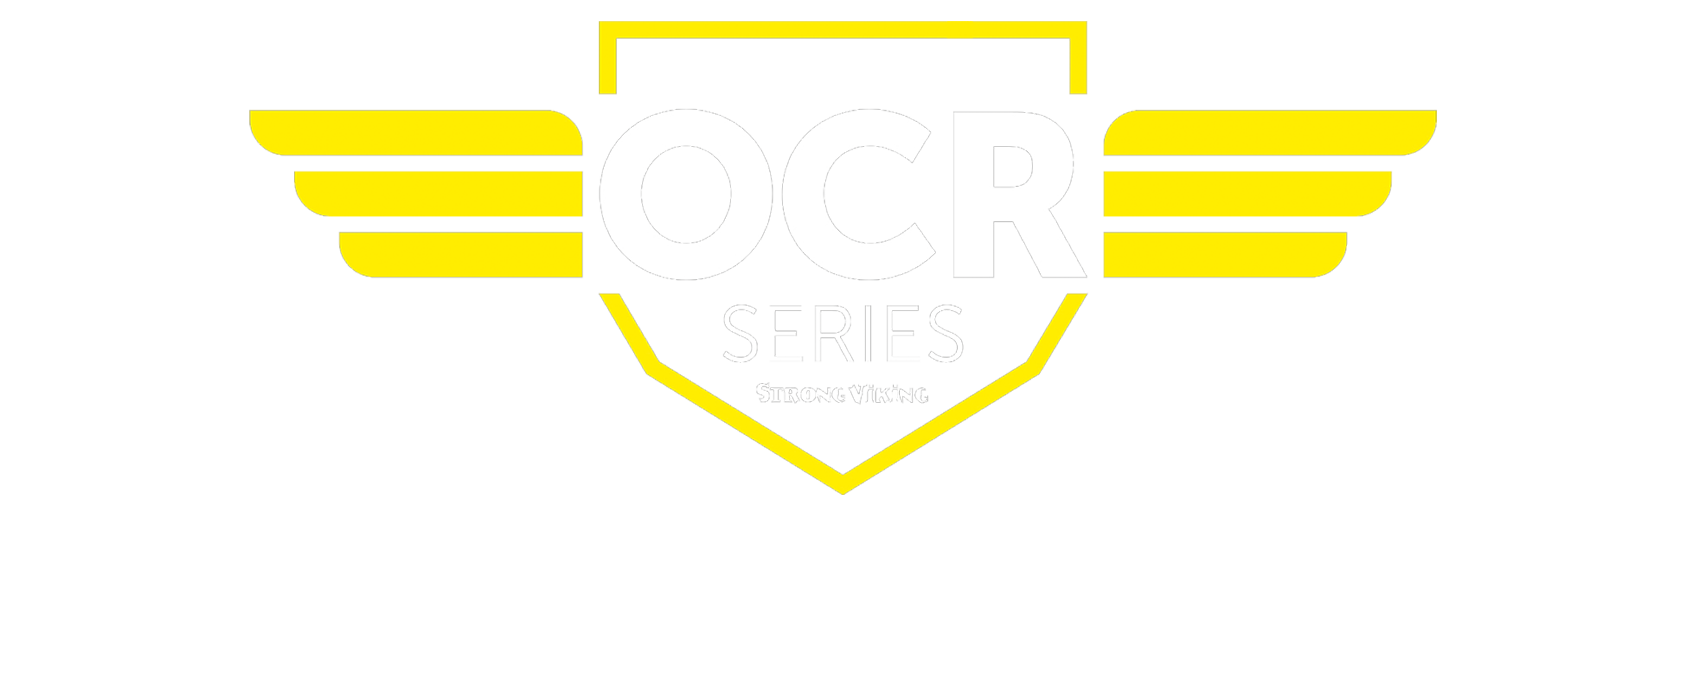 ocr series logo powered by Bjorn Borg